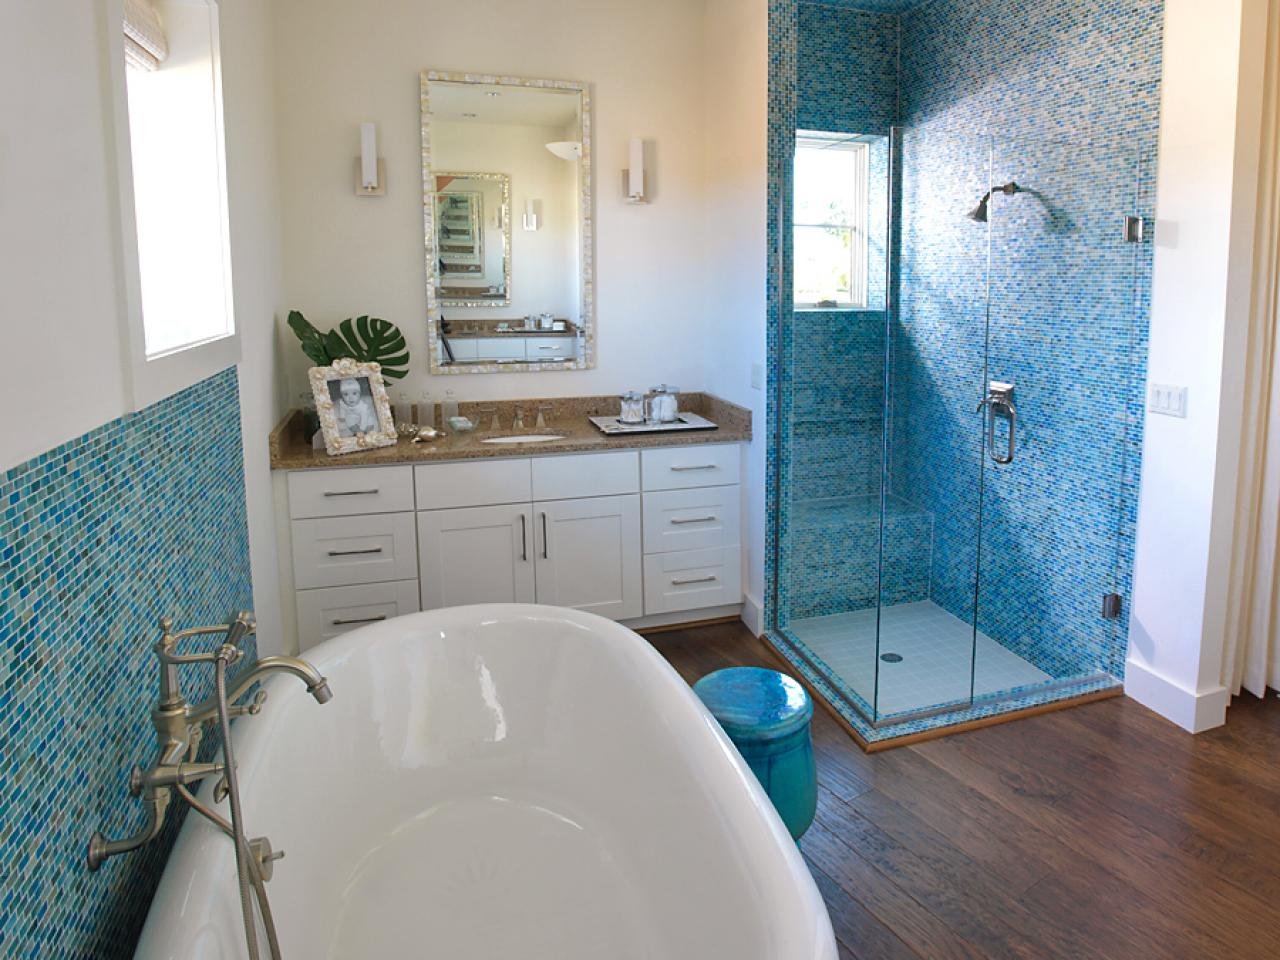 Best of designers 39 portfolio bathrooms bathroom ideas designs hgtv - Best bathrooms ...